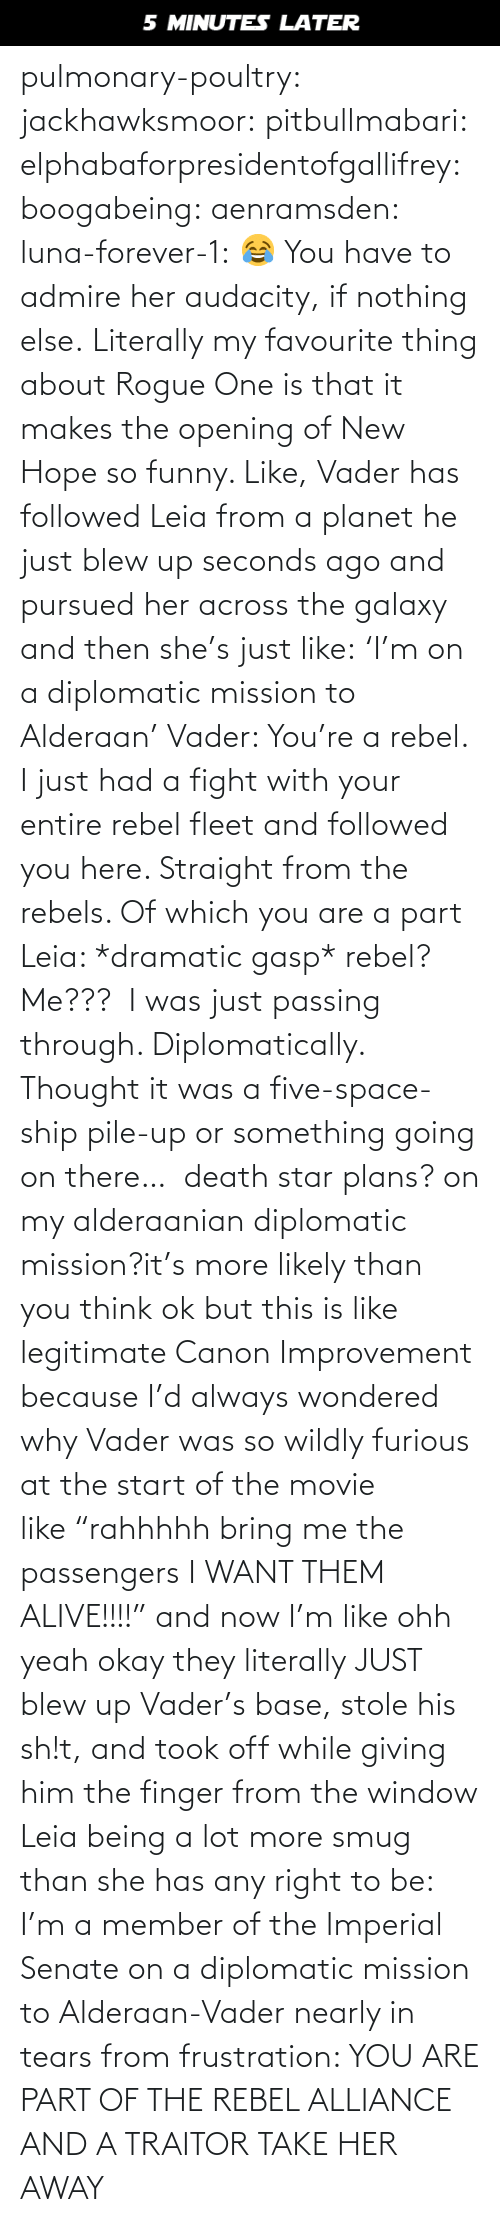 "Member: 5 MINUTES LATER pulmonary-poultry:  jackhawksmoor:  pitbullmabari:  elphabaforpresidentofgallifrey:  boogabeing:  aenramsden:  luna-forever-1: 😂 You have to admire her audacity, if nothing else.  Literally my favourite thing about Rogue One is that it makes the opening of New Hope so funny. Like, Vader has followed Leia from a planet he just blew up seconds ago and pursued her across the galaxy and then she's just like: 'I'm on a diplomatic mission to Alderaan' Vader: You're a rebel. I just had a fight with your entire rebel fleet and followed you here. Straight from the rebels. Of which you are a part Leia: *dramatic gasp* rebel? Me???  I was just passing through. Diplomatically. Thought it was a five-space-ship pile-up or something going on there…   death star plans? on my alderaanian diplomatic mission?it's more likely than you think   ok but this is like legitimate Canon Improvement because I'd always wondered why Vader was so wildly furious at the start of the movie like ""rahhhhh bring me the passengers I WANT THEM ALIVE!!!!"" and now I'm like ohh yeah okay they literally JUST blew up Vader's base, stole his sh!t, and took off while giving him the finger from the window    Leia being a lot more smug than she has any right to be: I'm a member of the Imperial Senate on a diplomatic mission to Alderaan-Vader nearly in tears from frustration: YOU ARE PART OF THE REBEL ALLIANCE AND A TRAITOR TAKE HER AWAY"